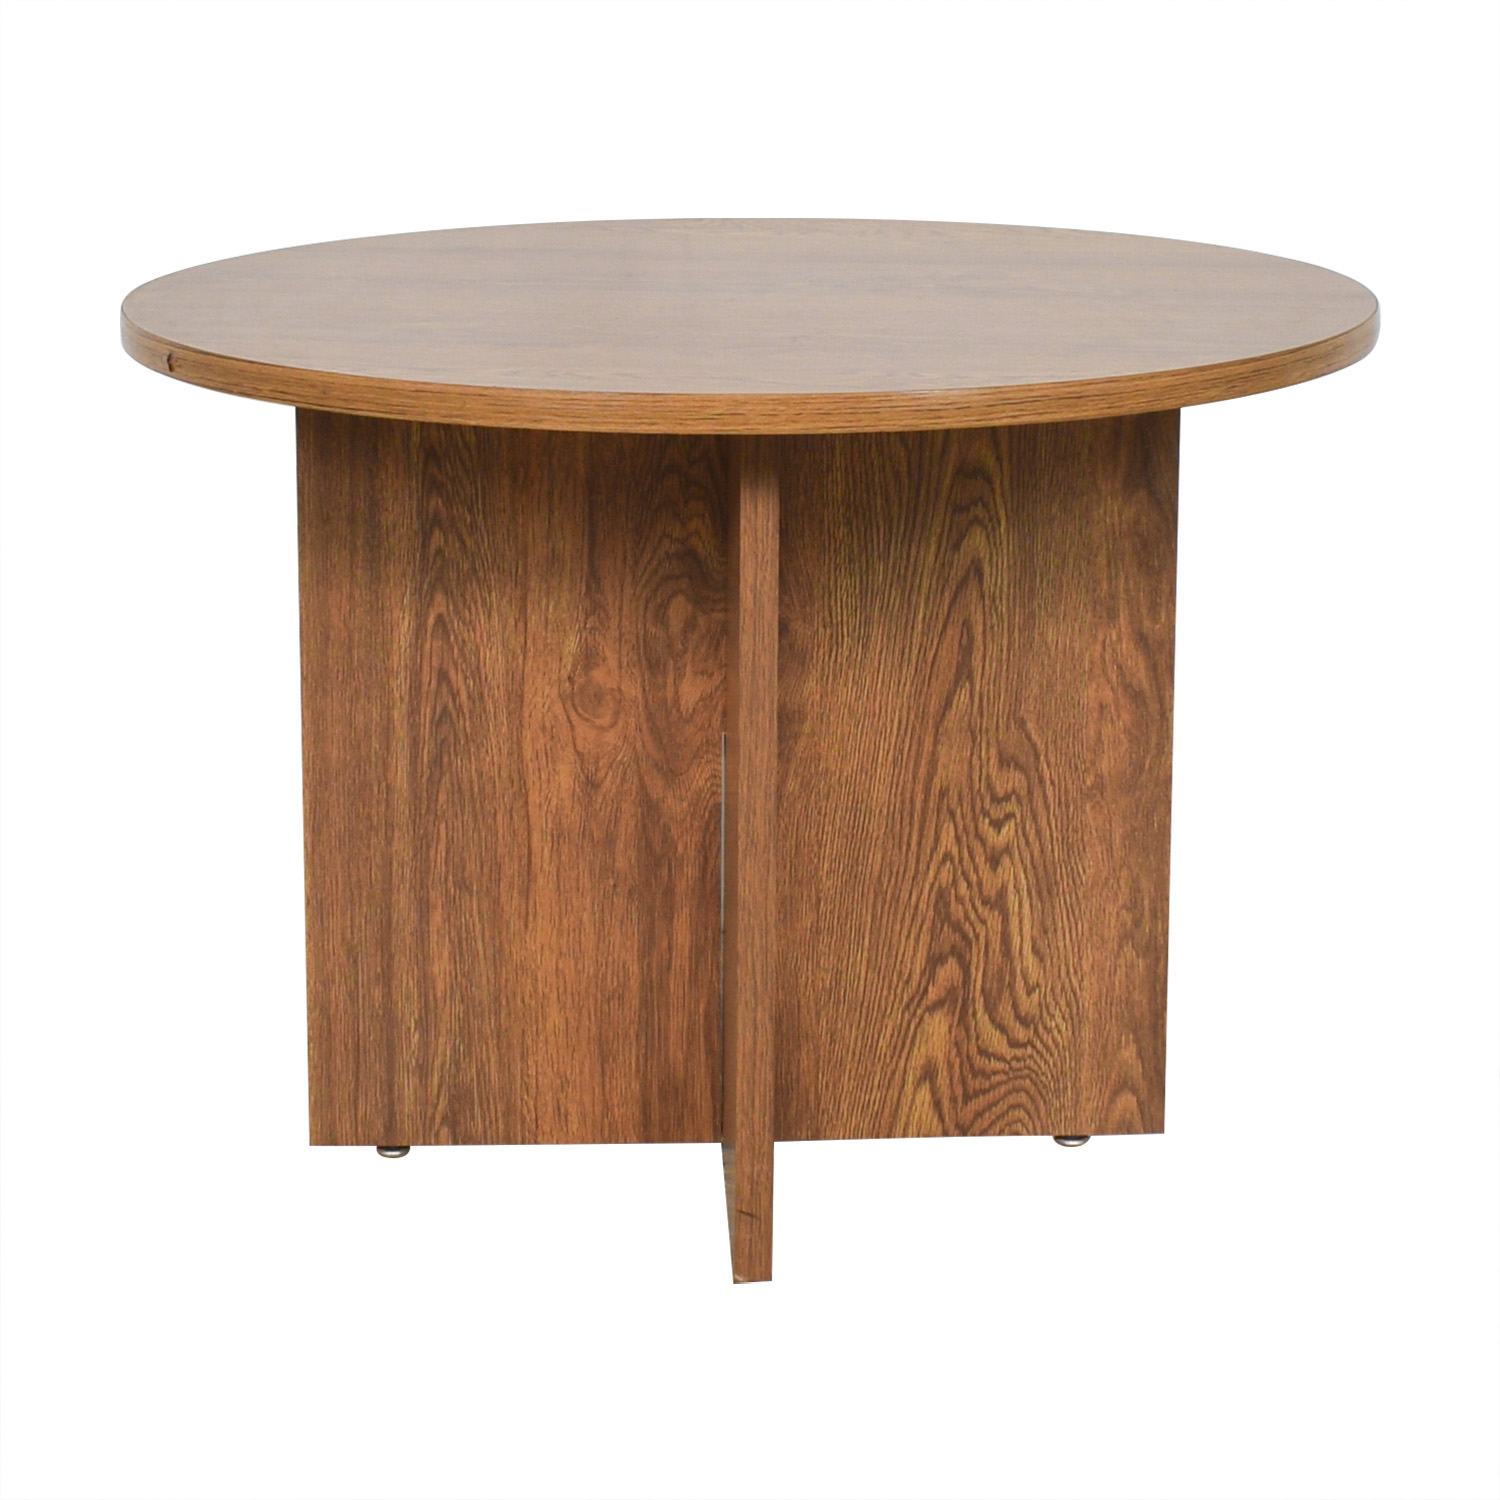 Round Conference Table / Utility Tables